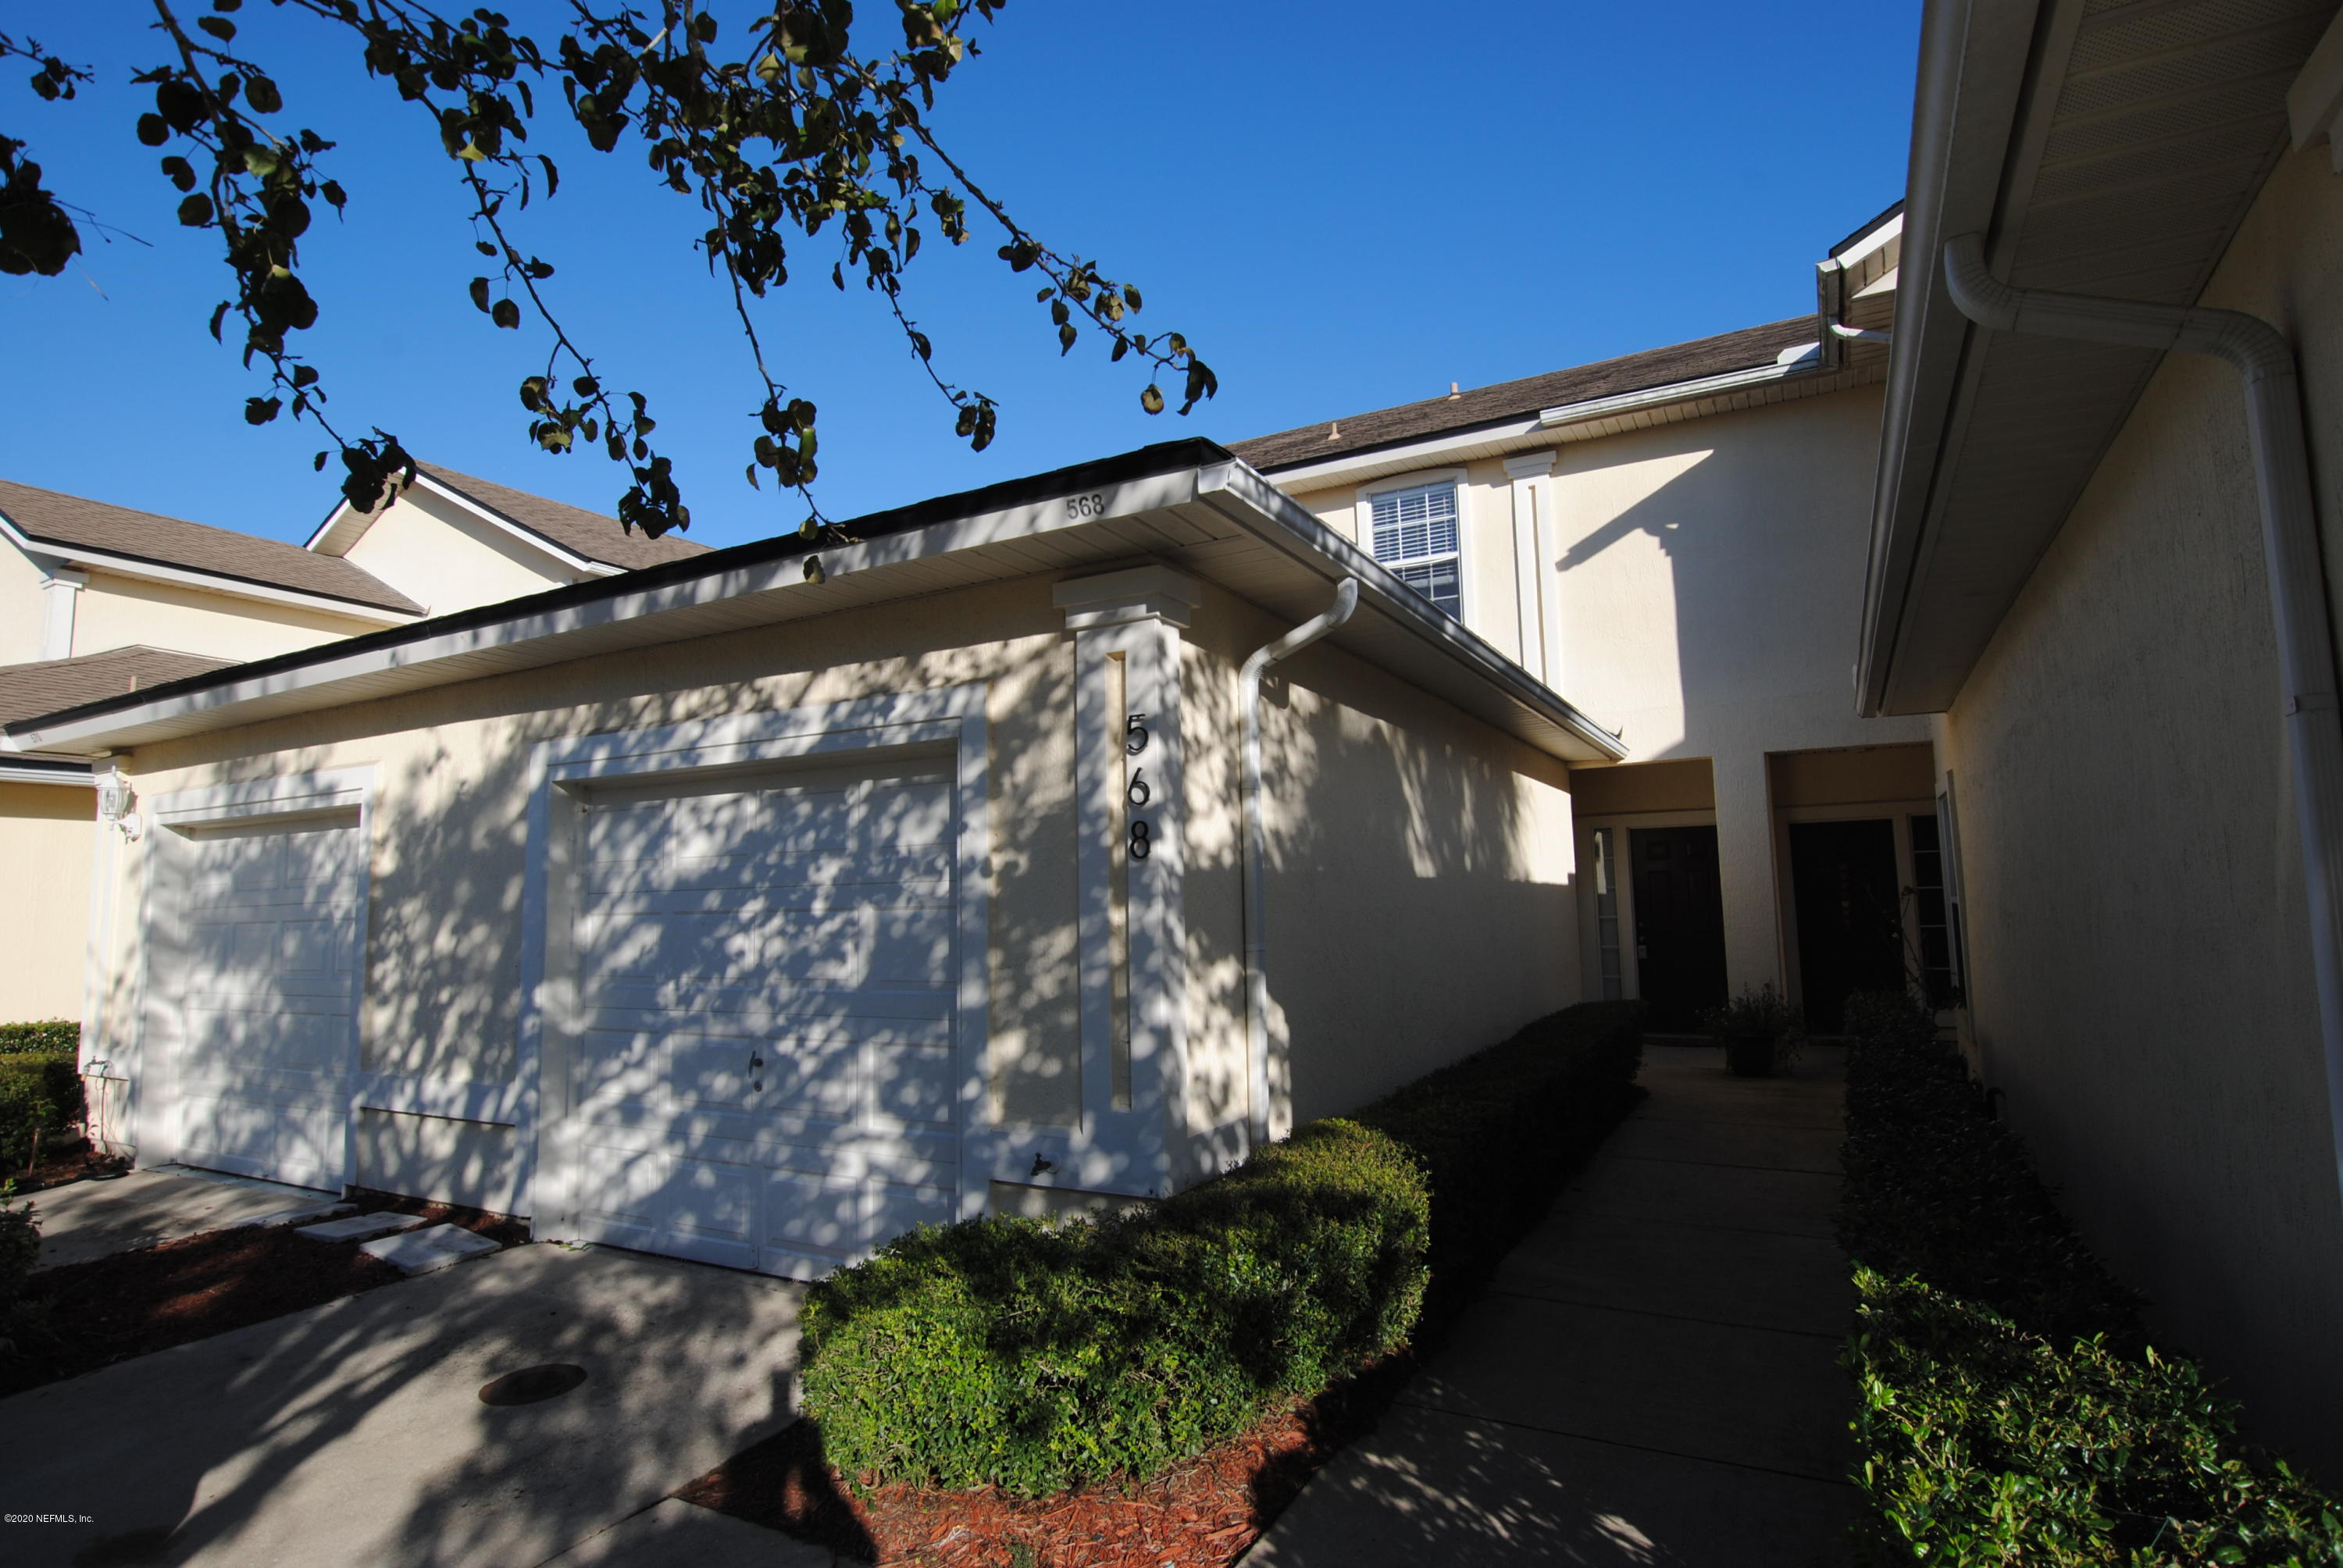 568 SOUTHBRANCH, JACKSONVILLE, FLORIDA 32259, 2 Bedrooms Bedrooms, ,2 BathroomsBathrooms,Rental,For Rent,SOUTHBRANCH,1081171